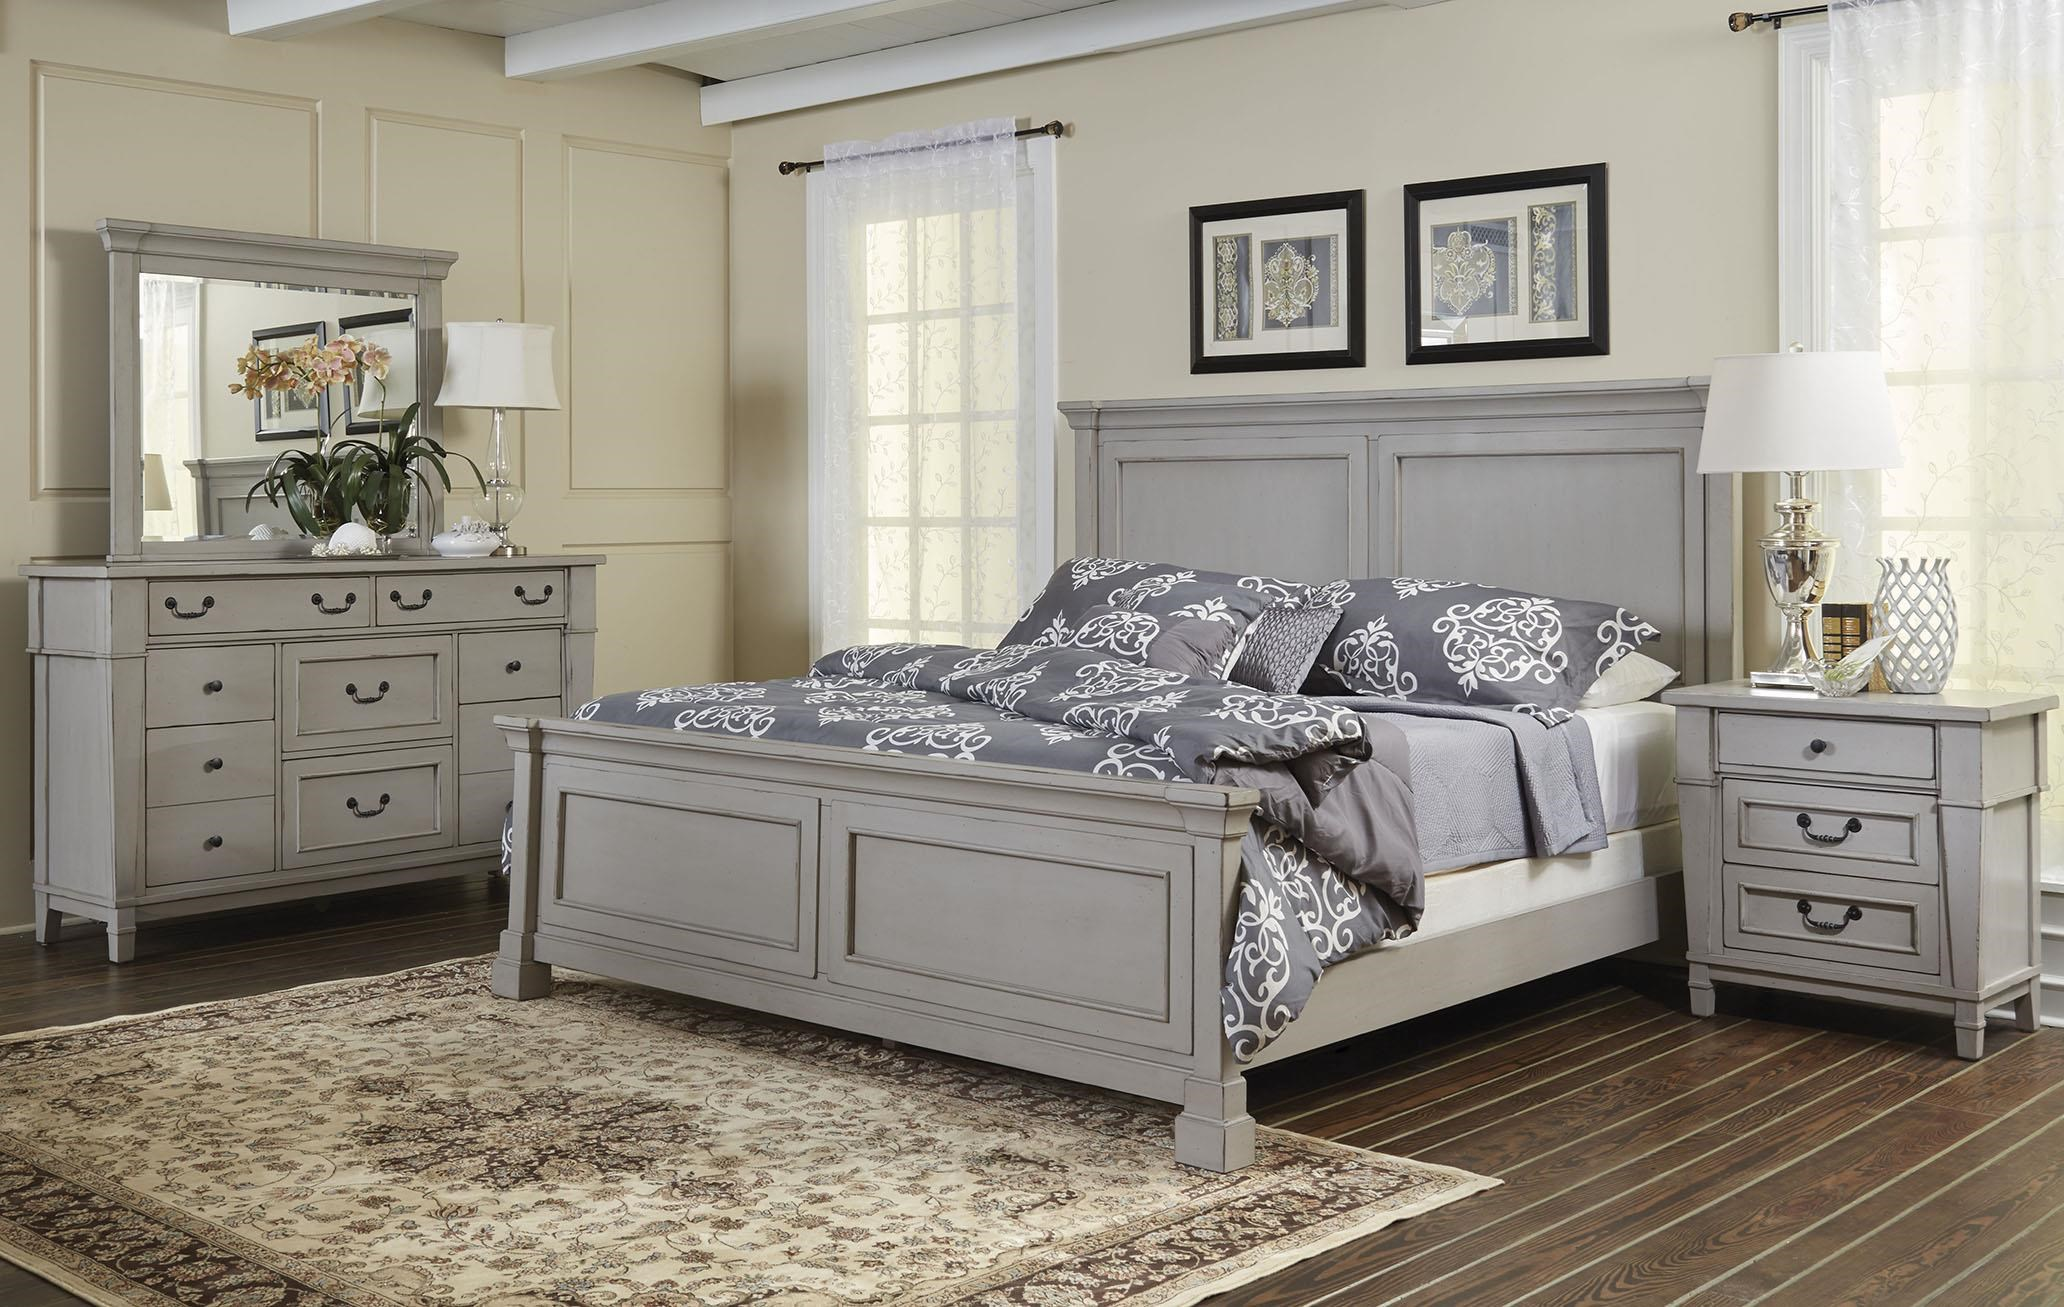 King  Panel Bed Dresser, Mirror, 3 DWR Nightstand